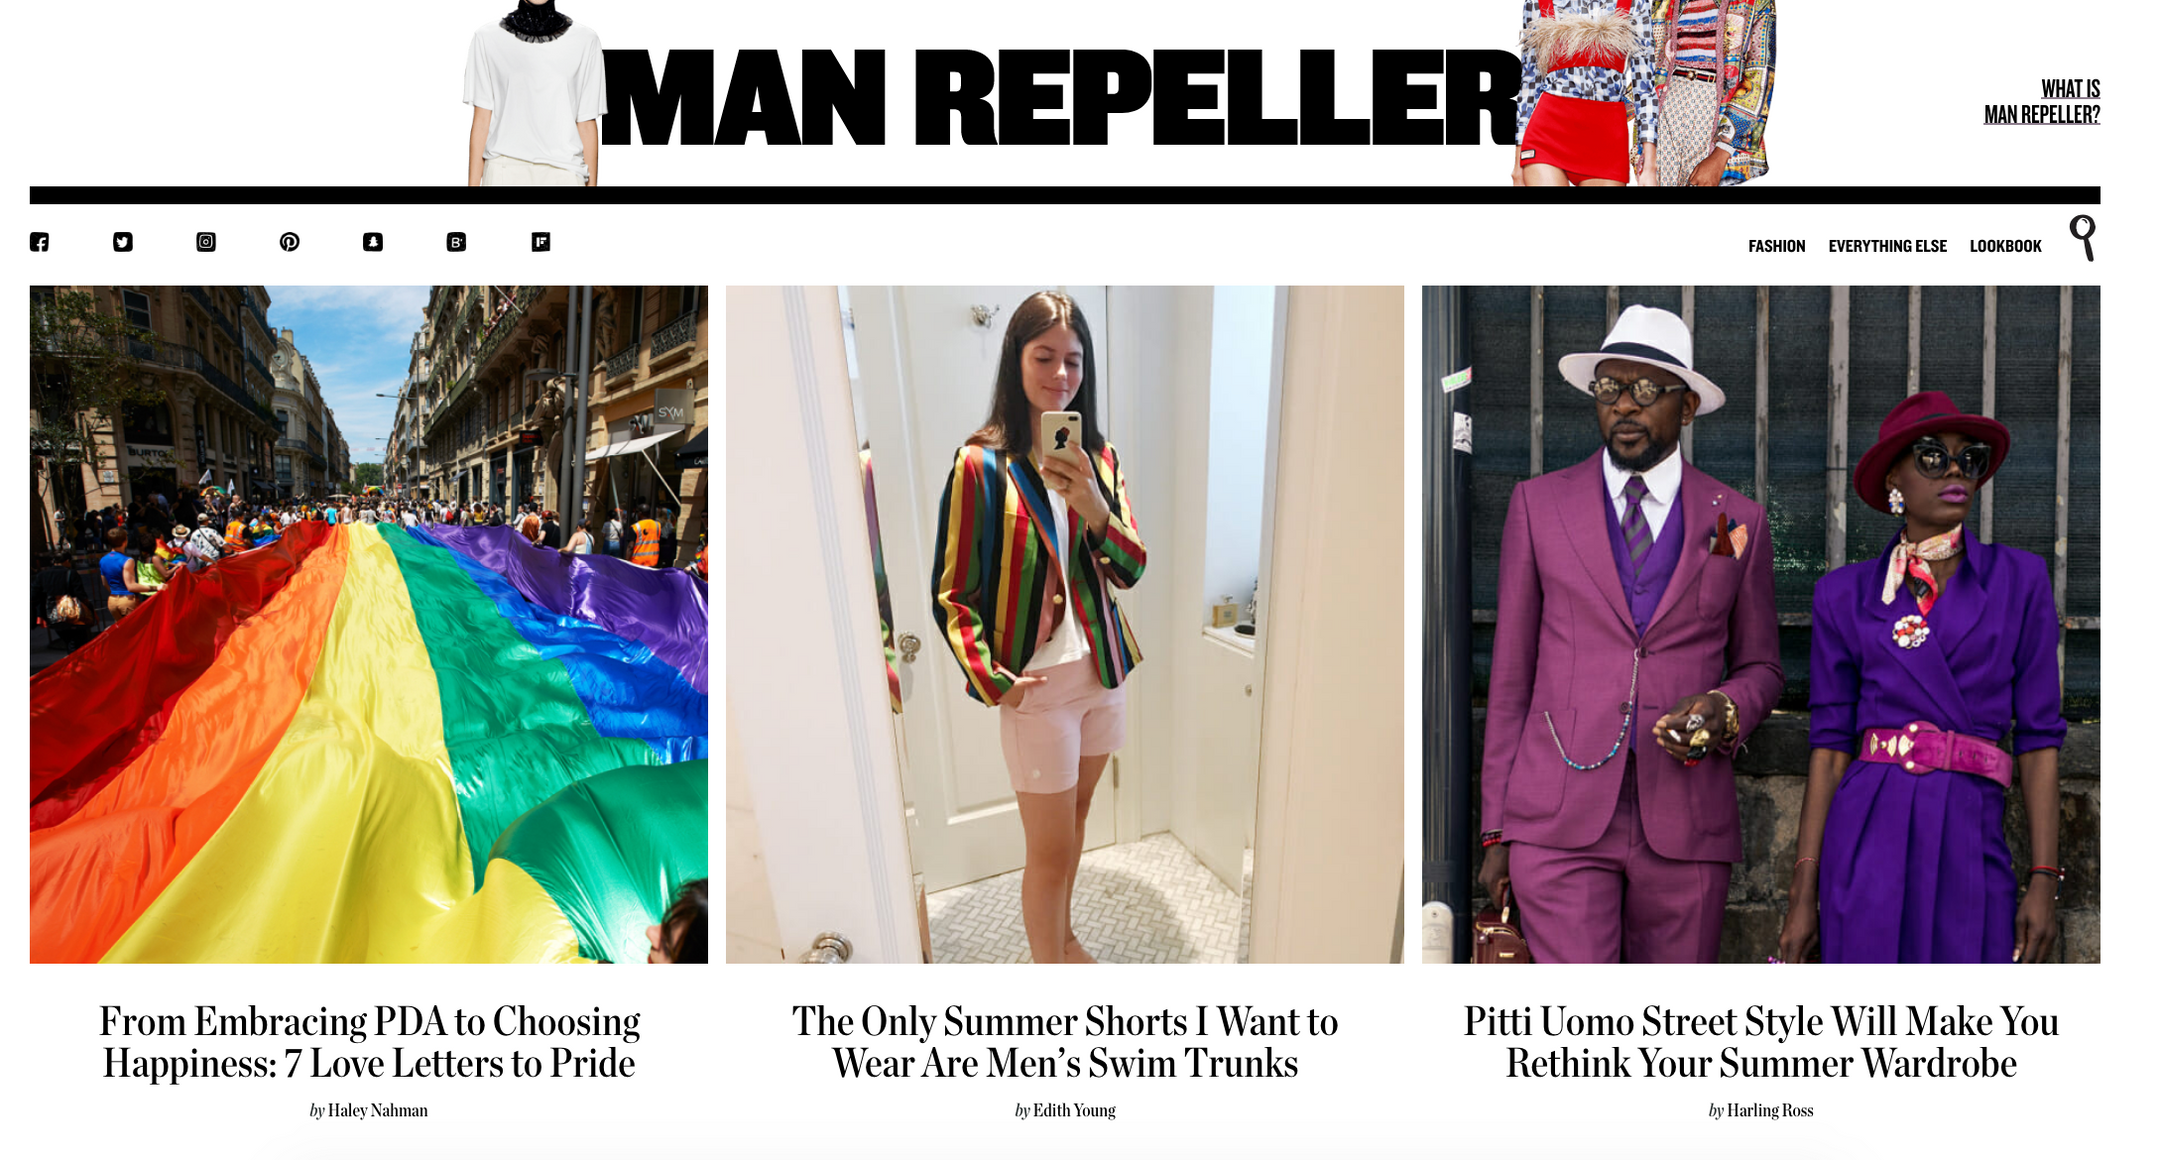 The Blazer and Trunks Look (Rowing Blazers featured on Man Repeller)